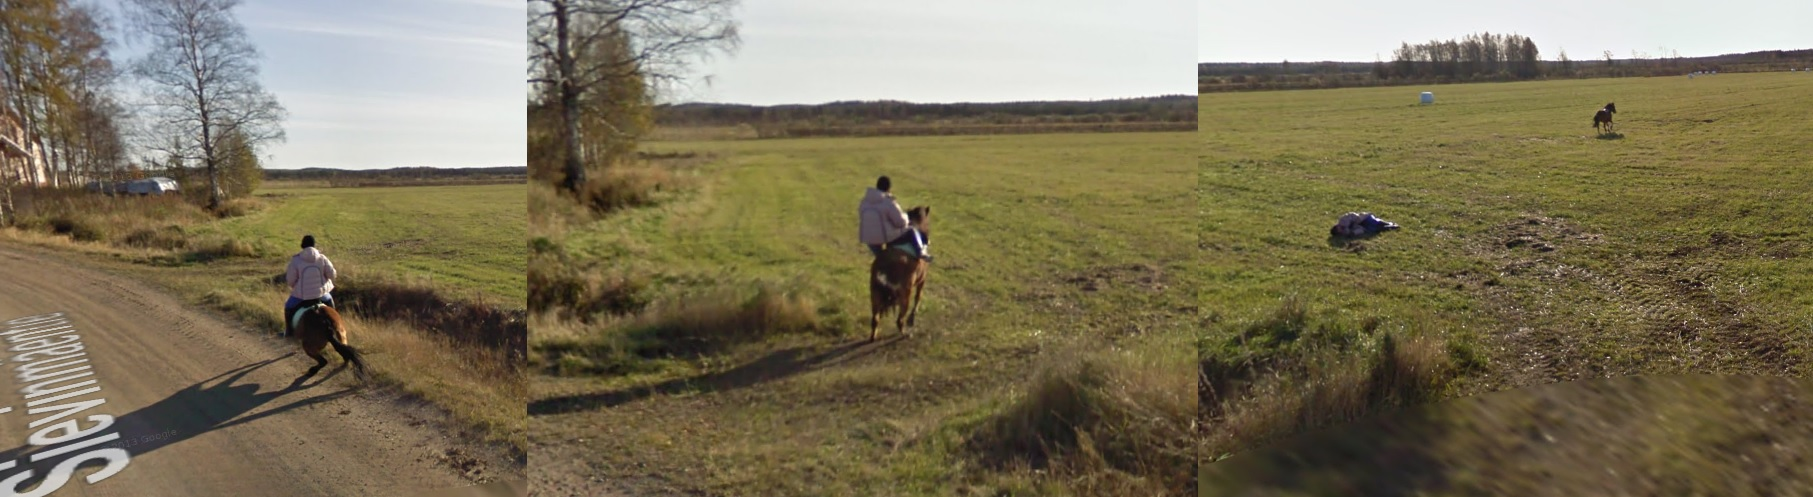 Google Street View Spooks a Horse.  Horse Bucks off Rider.